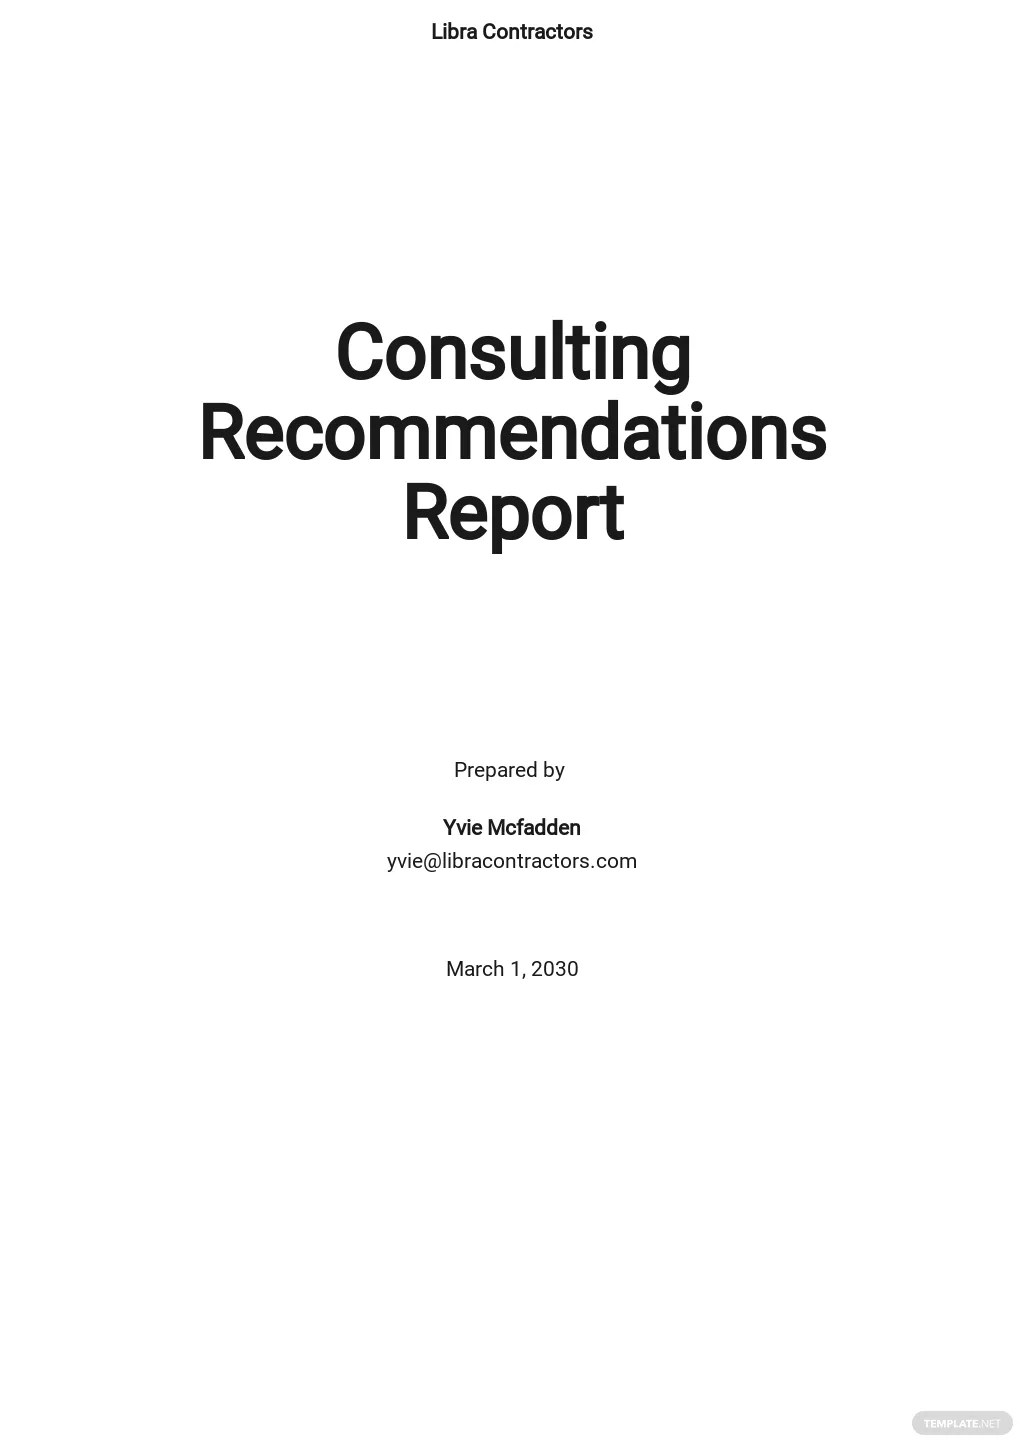 Consulting Recommendations Report Template [Free PDF